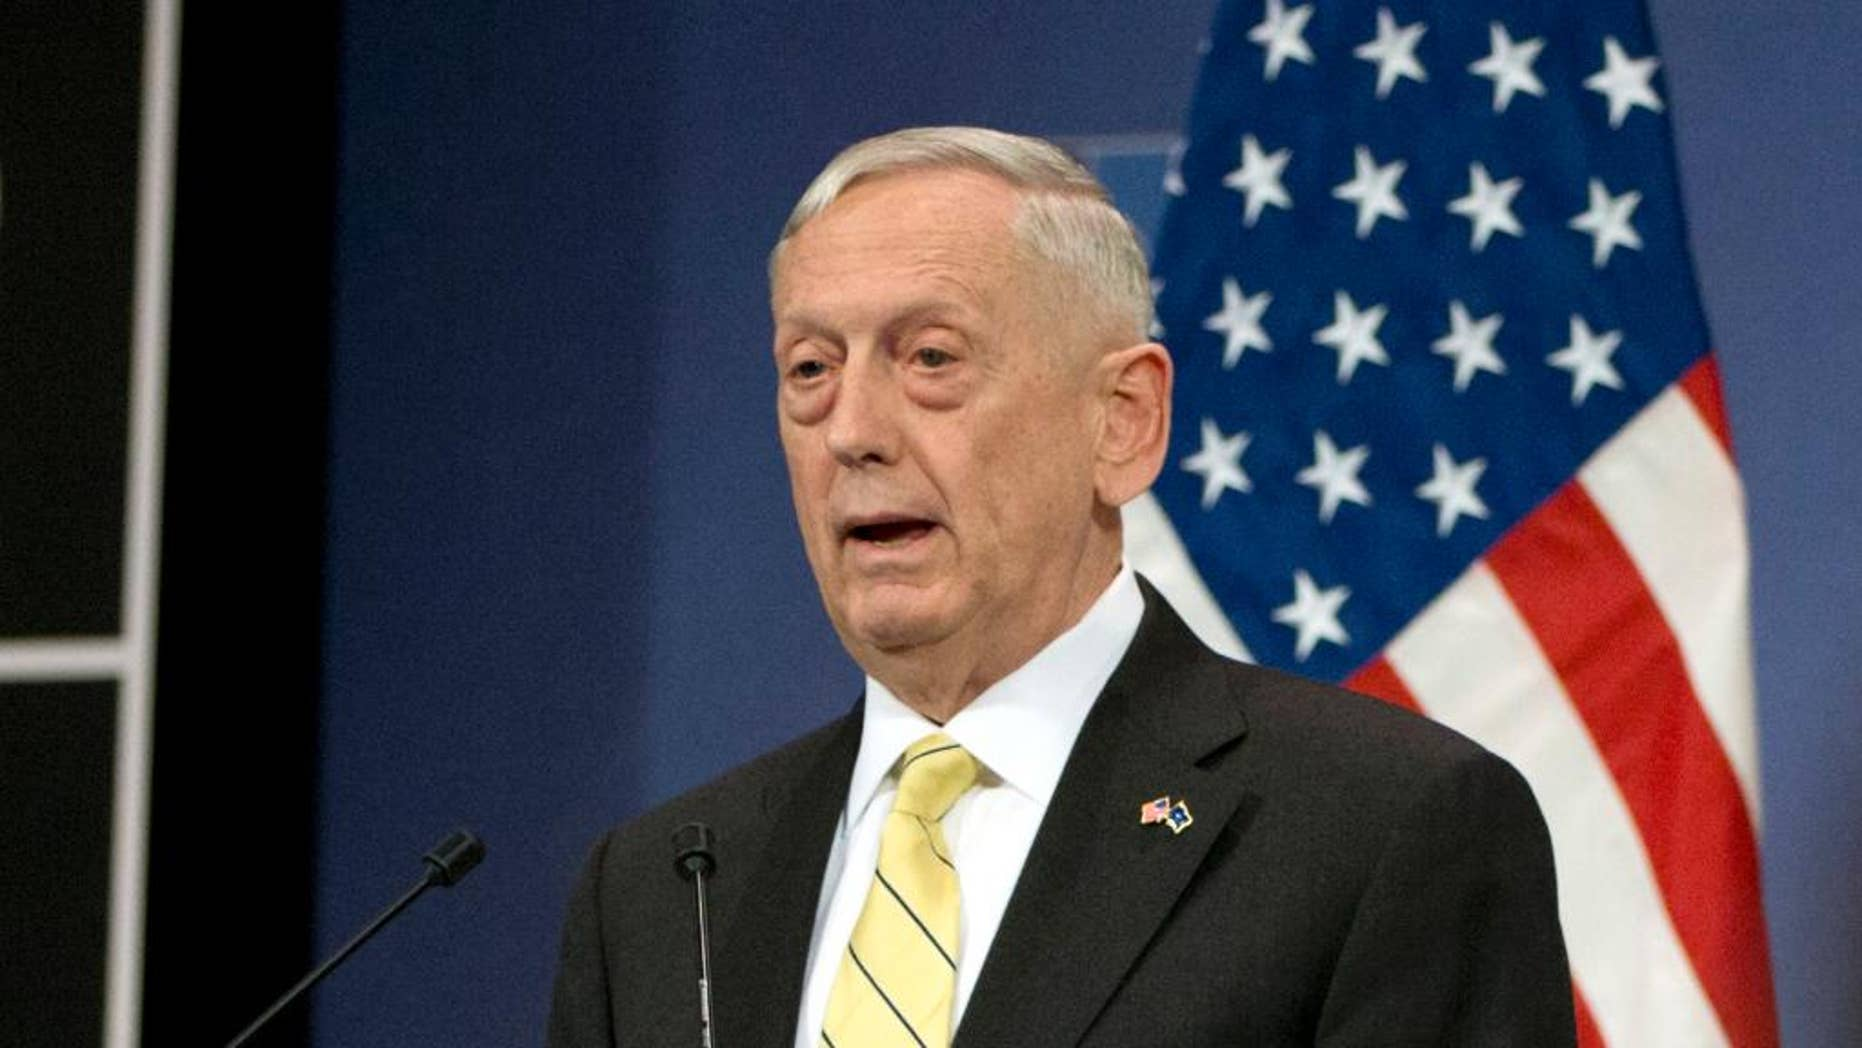 FILE - In this Feb. 16, 2017 file photo, Defense Secretary Jim Mattis speaks in Brussels. Mattis is not lonely in the Pentagon, but two months into his tenure as secretary of defense not a single political appointee has joined him. The retired Marine general, who took office just hours after President Donald Trump was sworn in, has battled the White House over choices for high-priority civilian positions that, while rarely visible to the public, are key to developing and implementing defense policy at home and abroad.  (AP Photo/Virginia Mayo, File)